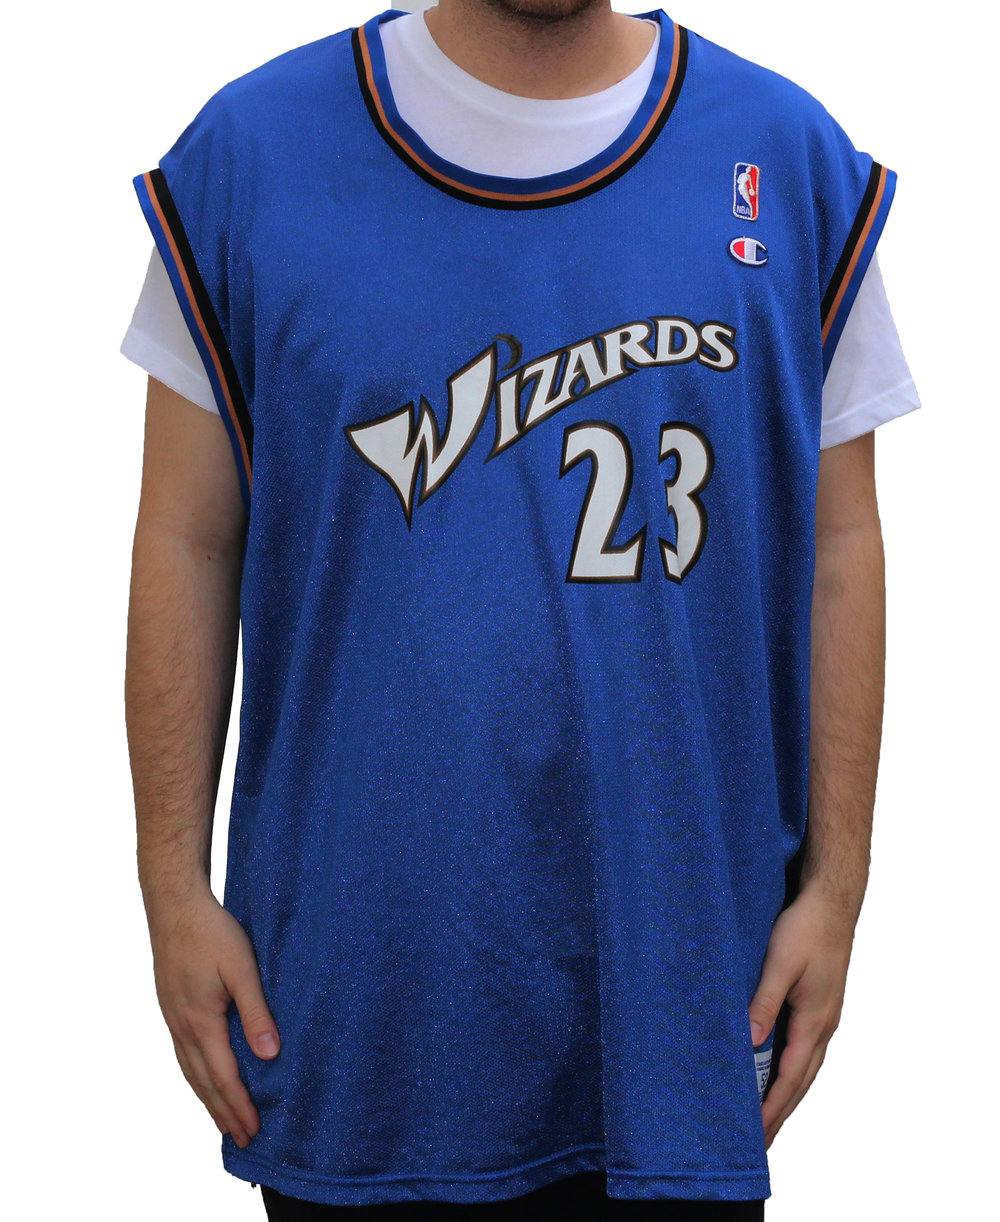 promo code washington wizards jordan jersey c1e54 ef99e